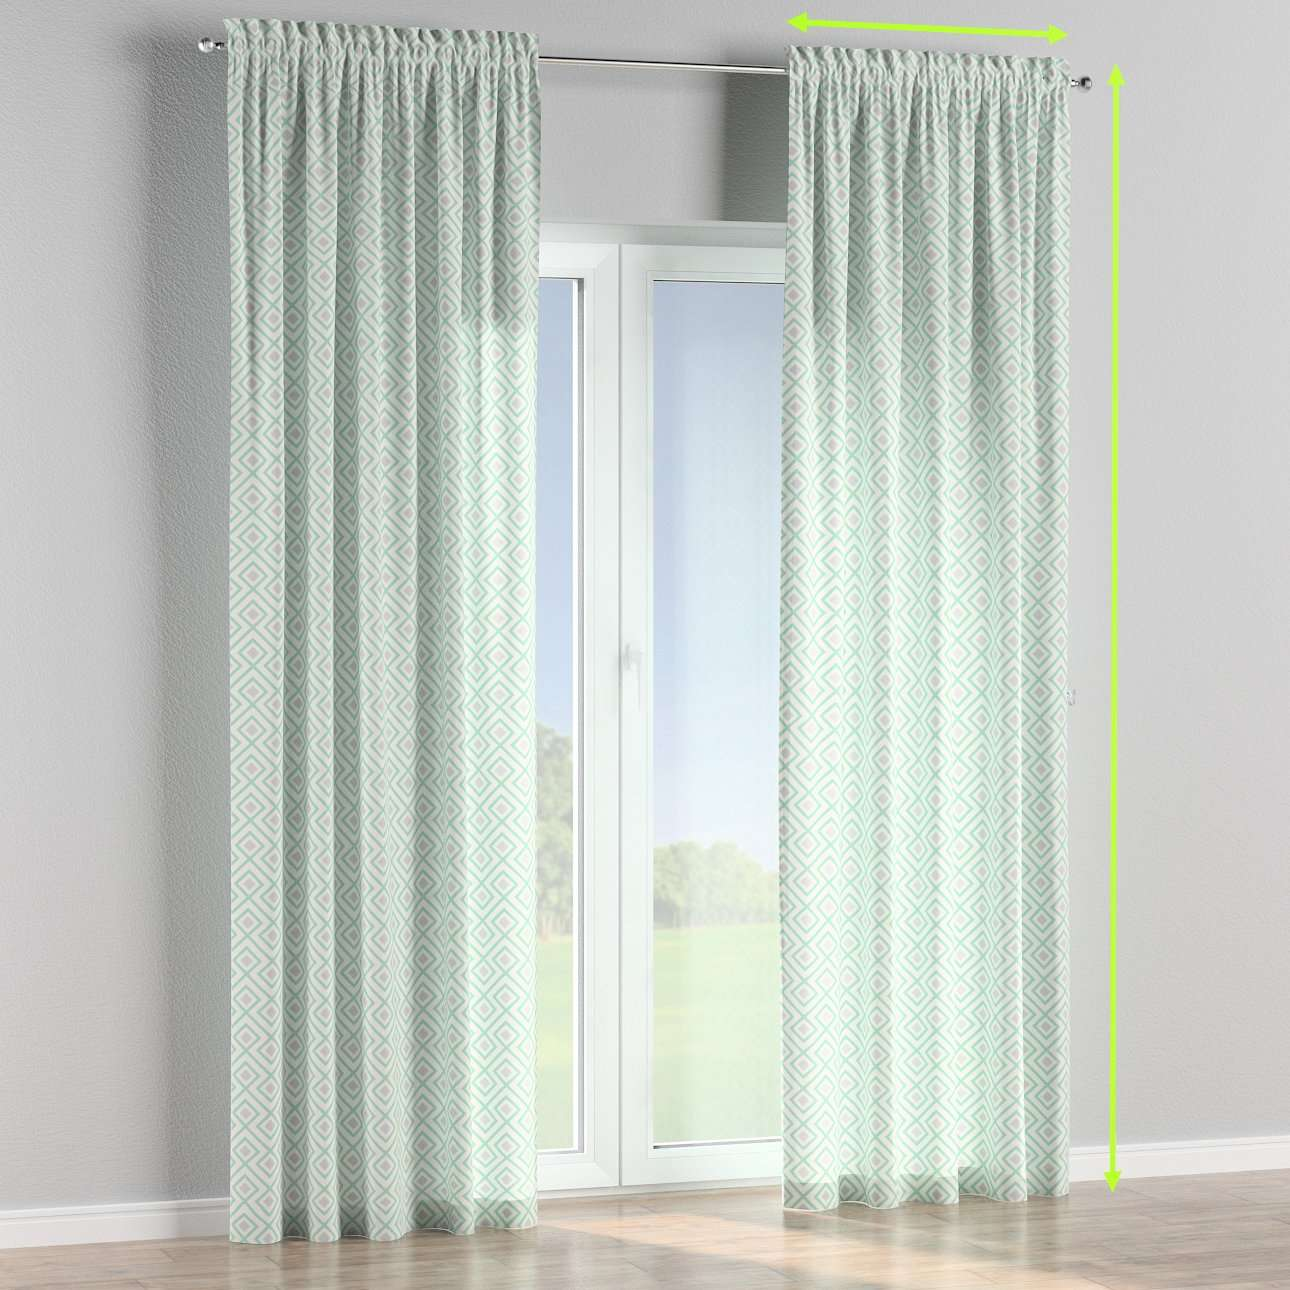 Slot and frill lined curtains in collection Geometric, fabric: 141-45